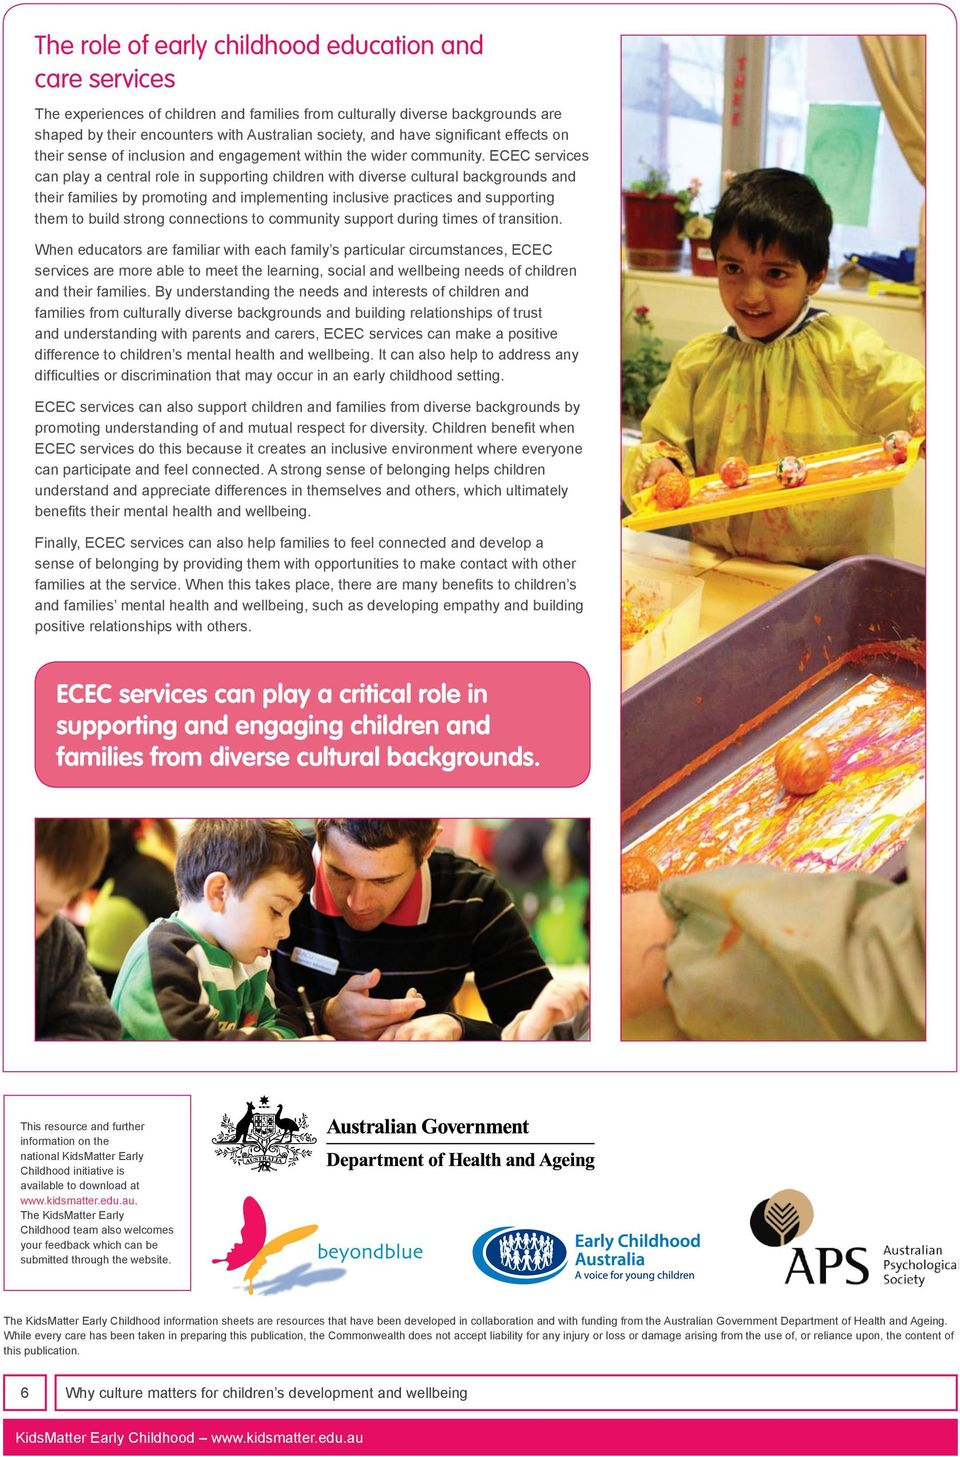 ECEC services can play a central role in supporting children with diverse cultural backgrounds and their families by promoting and implementing inclusive practices and supporting them to build strong